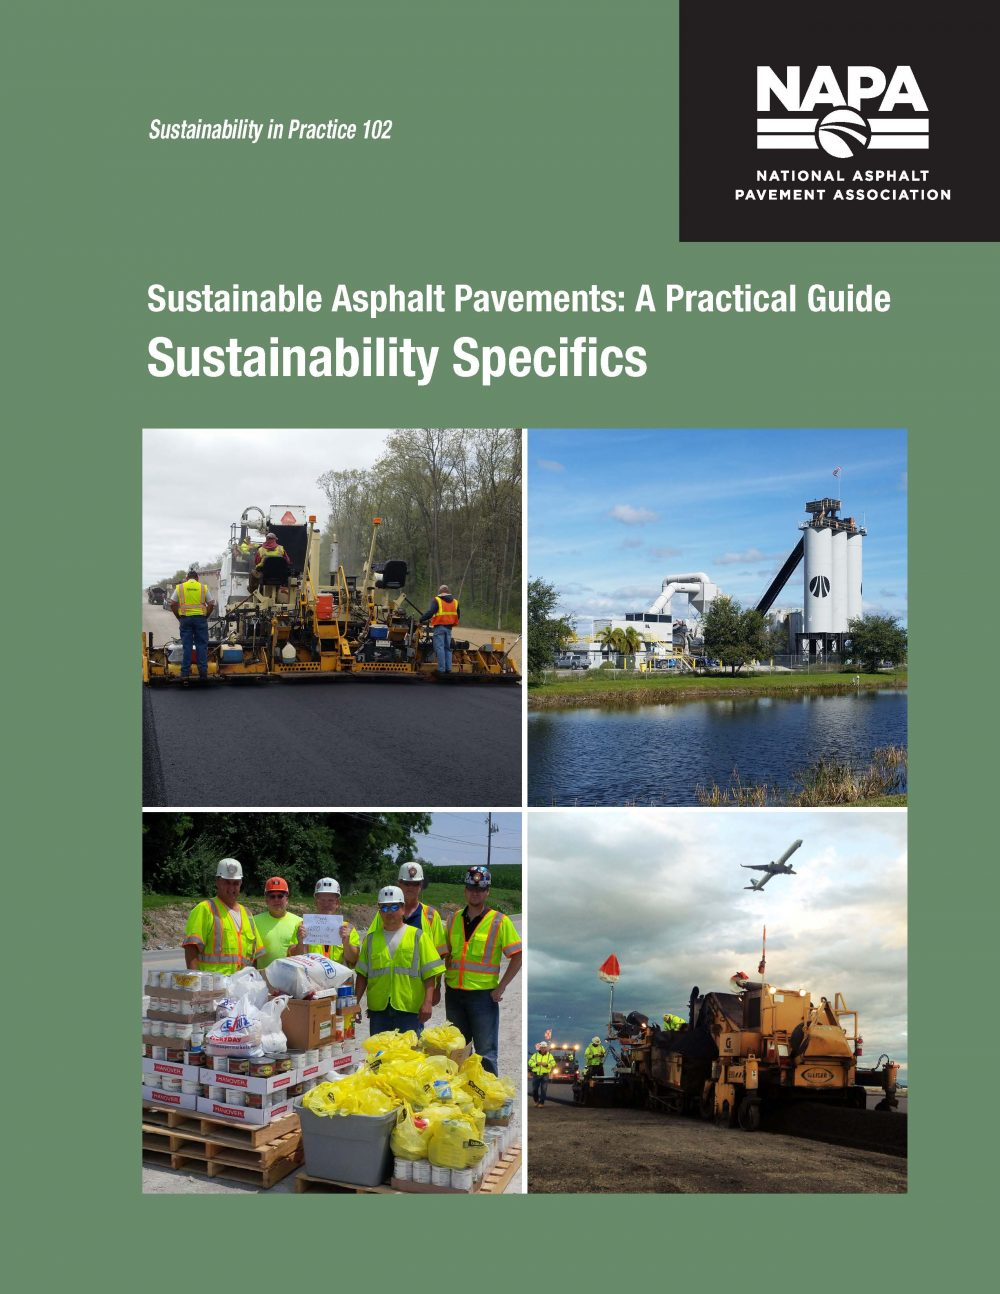 NAPA Practical Guide Series highlights Asphalt Sustainability